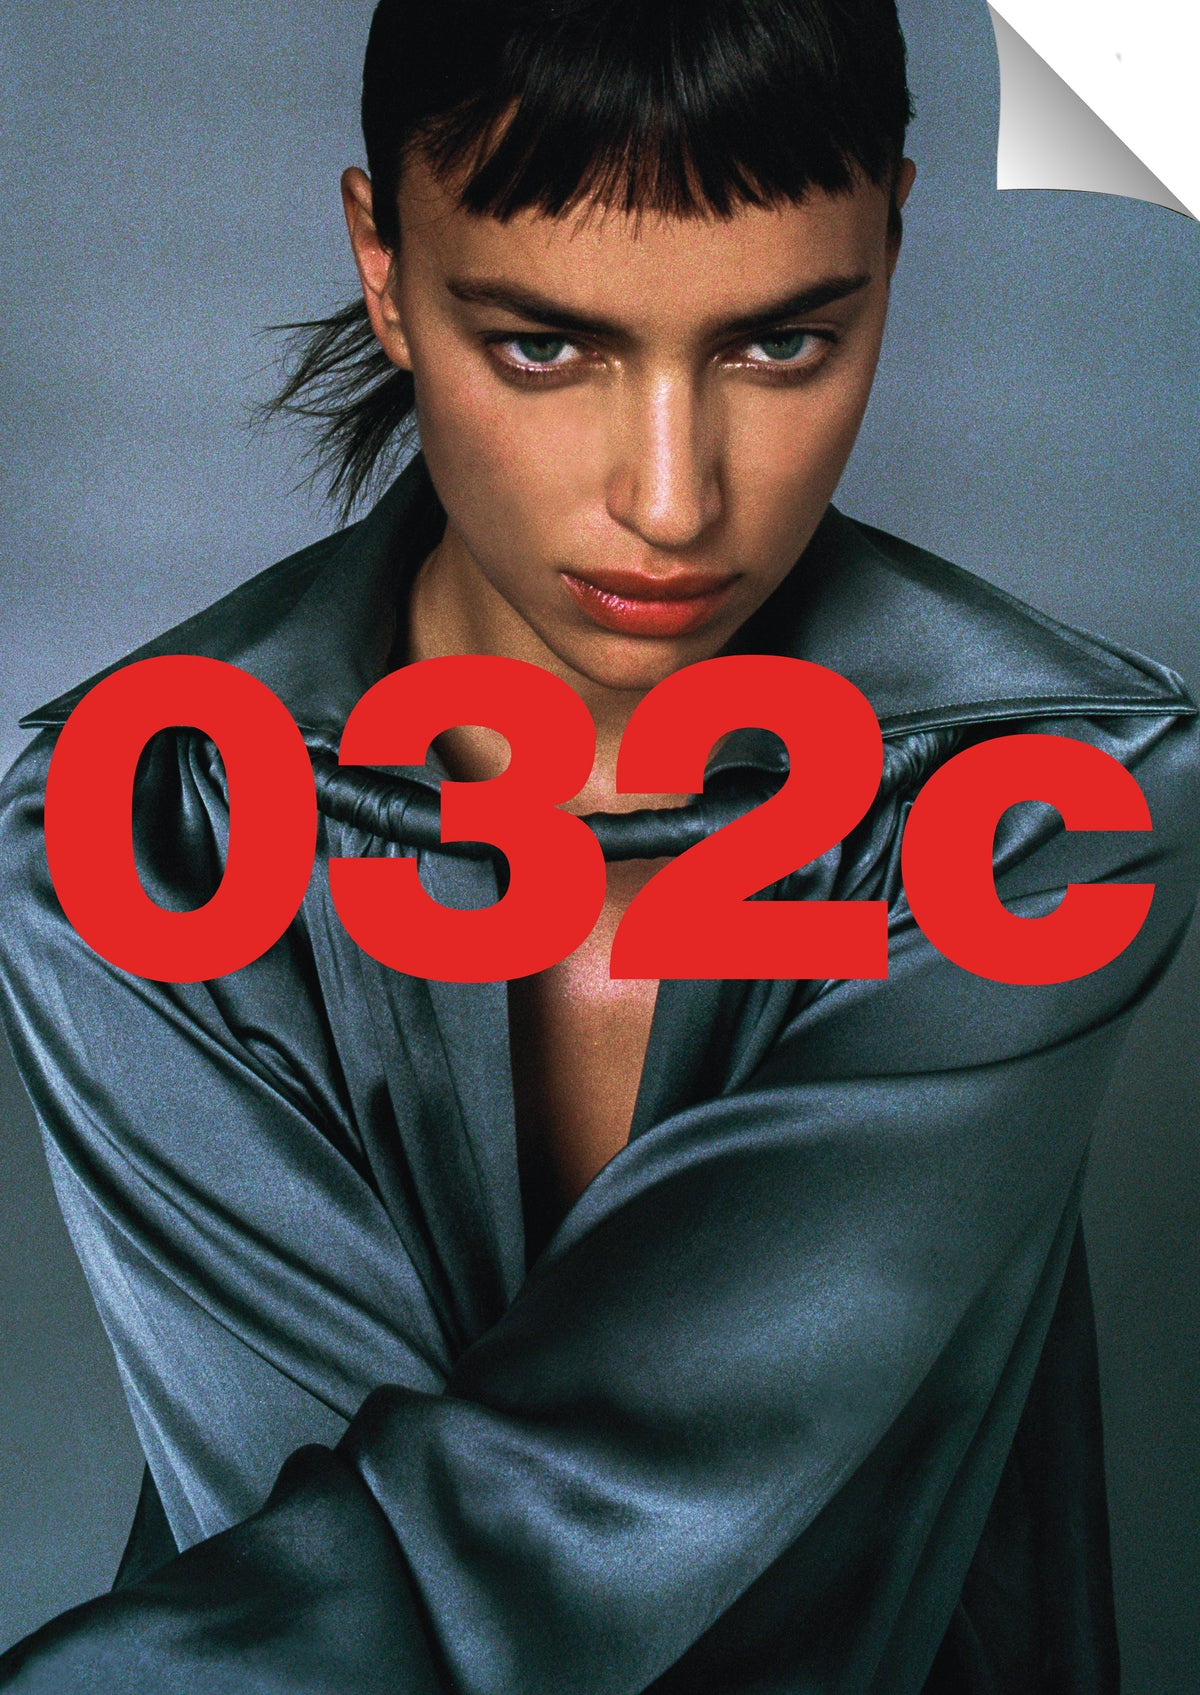 032c Issue 36 Poster - 032c